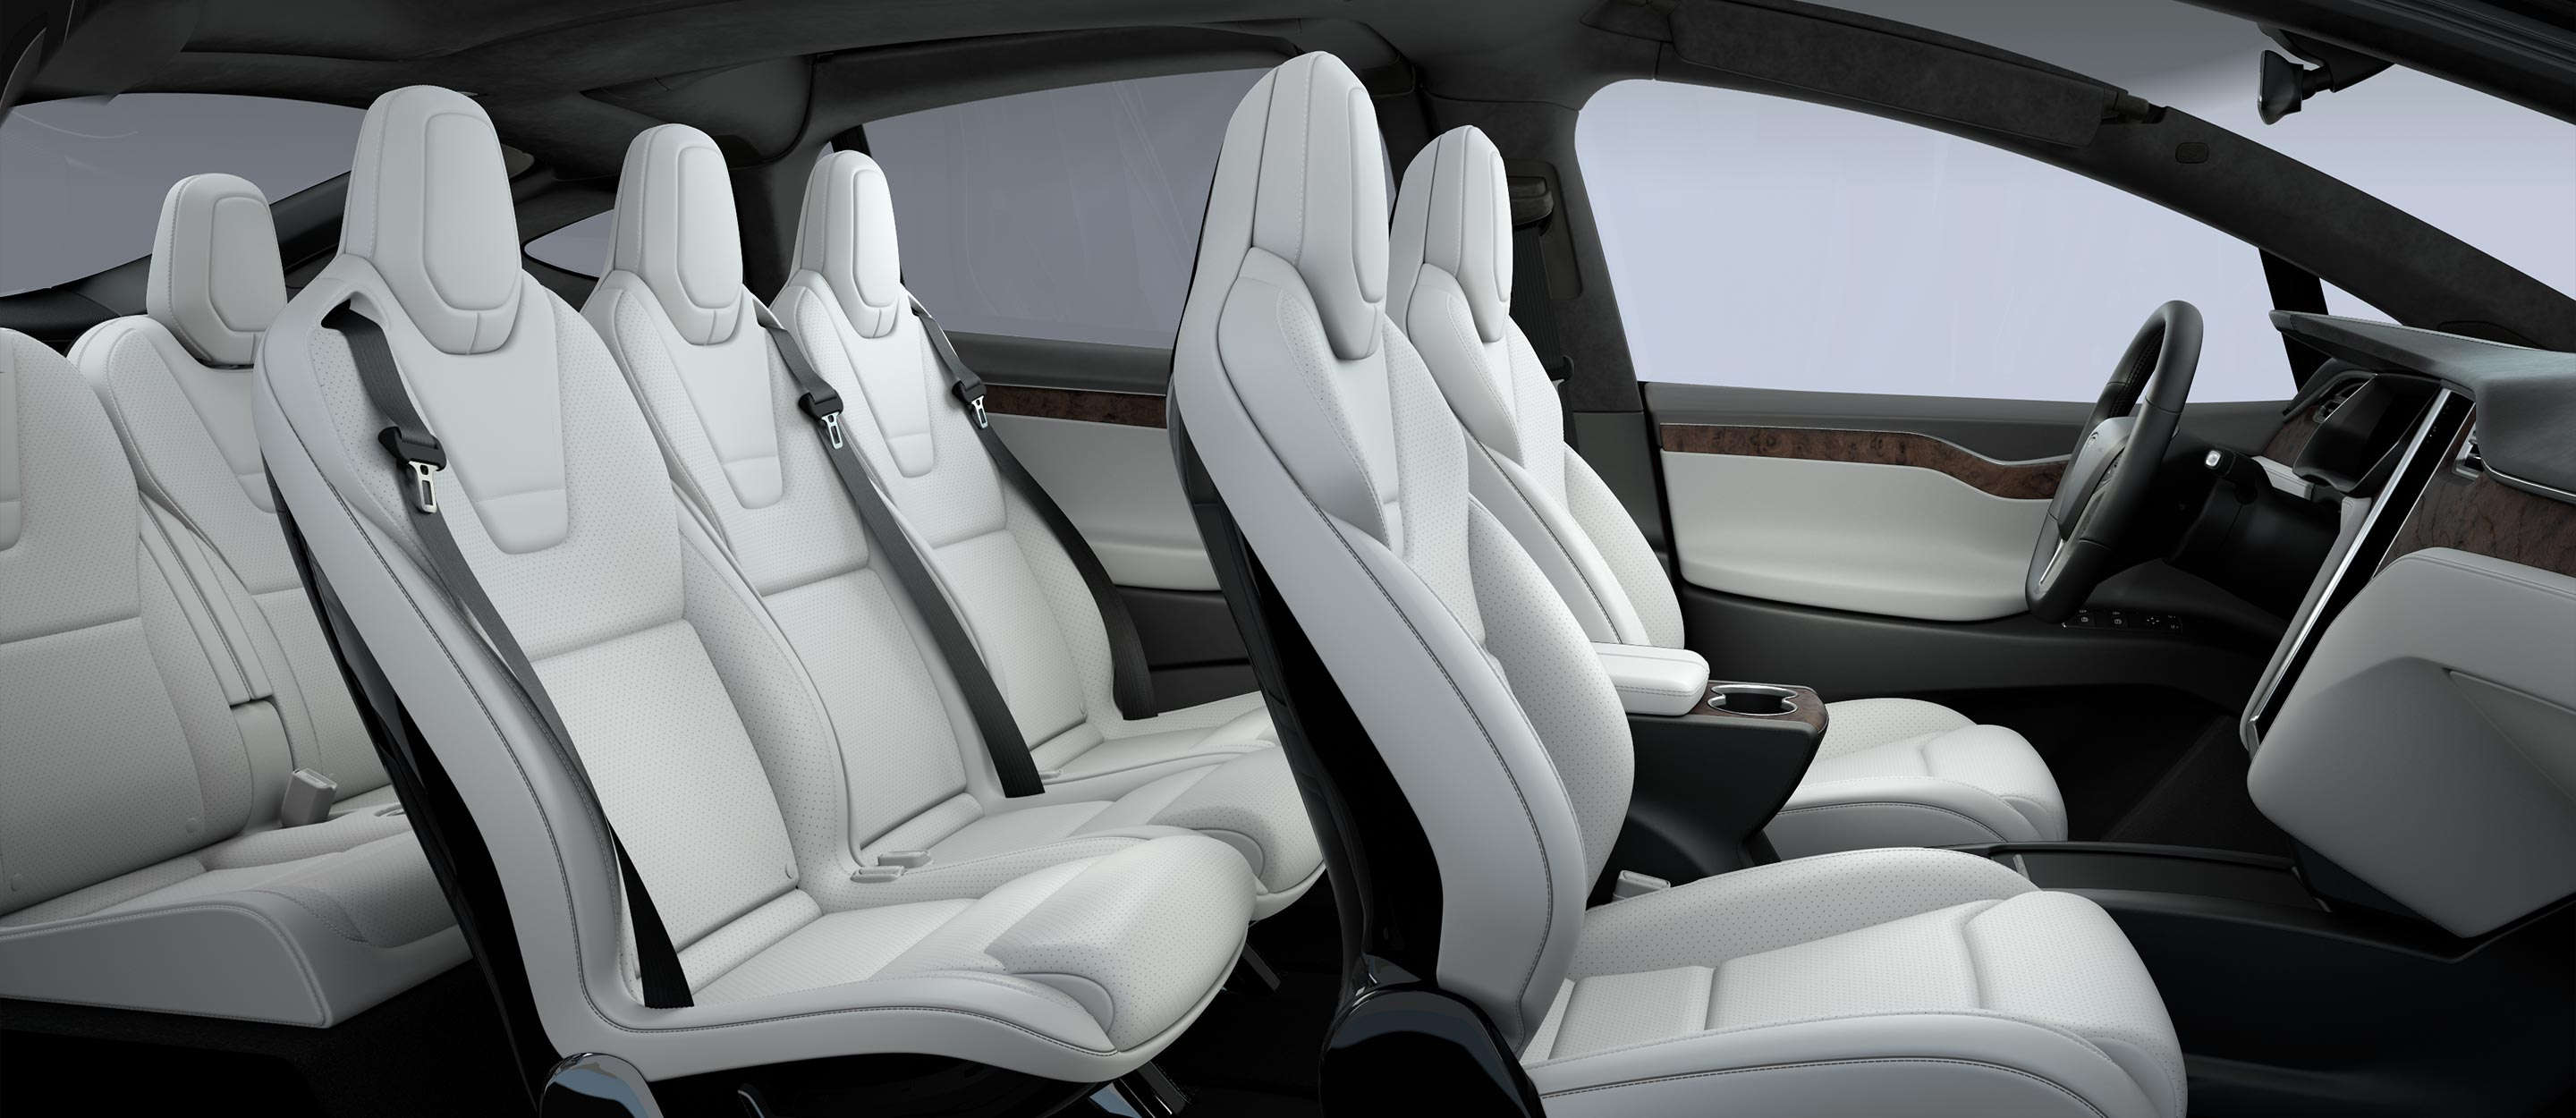 section-interior-primary-white.jpg